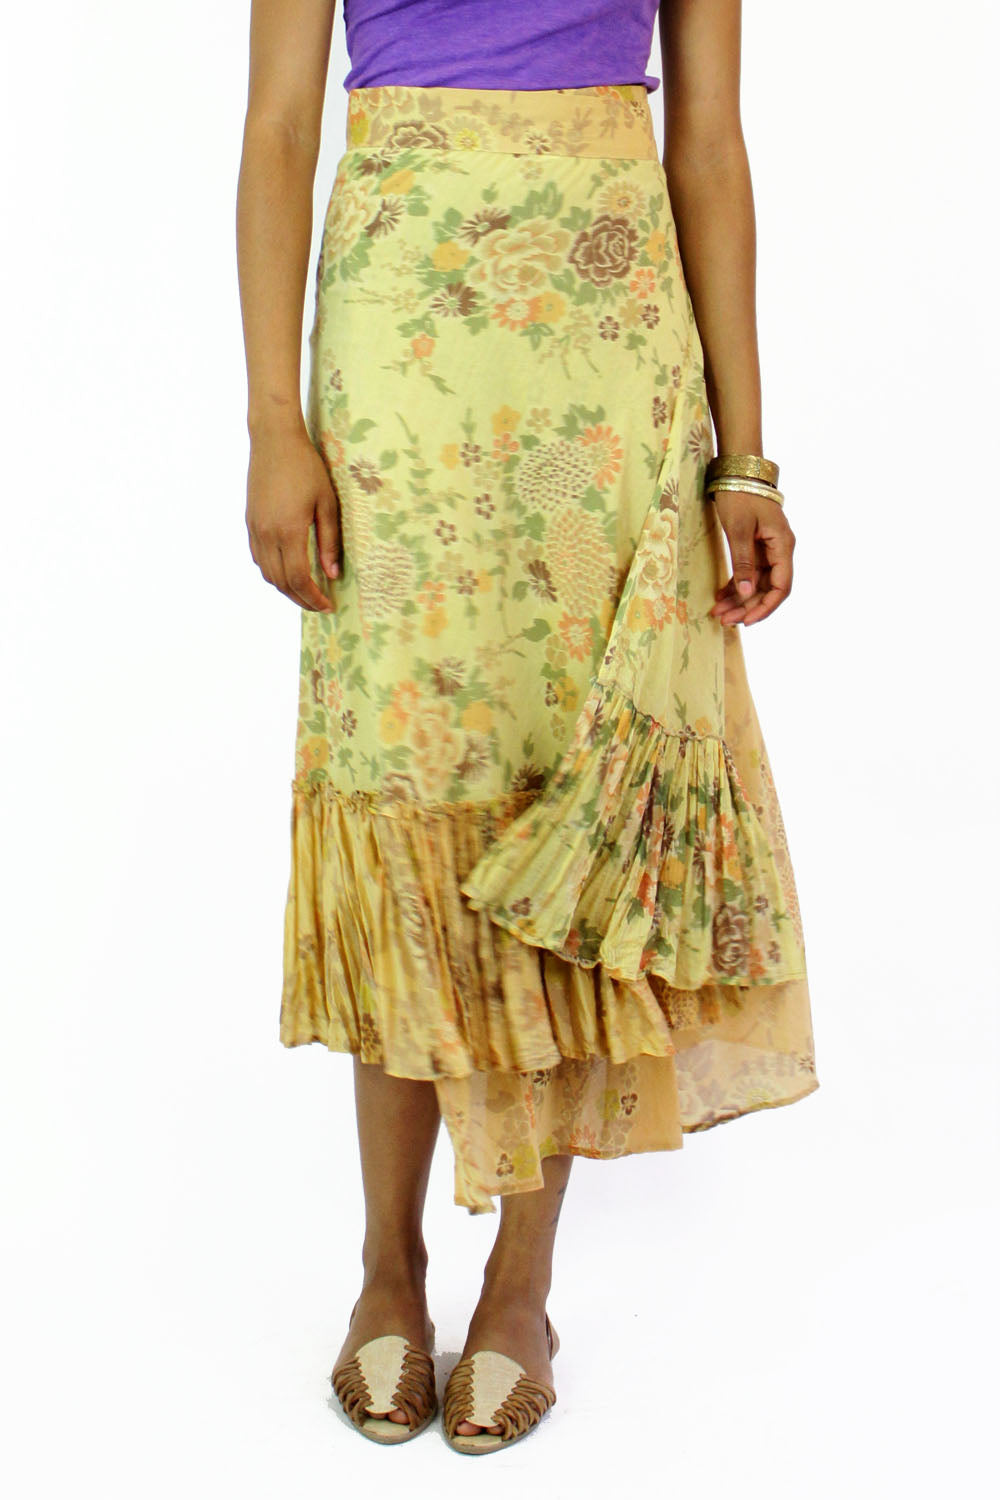 Dosa tea dyed skirt